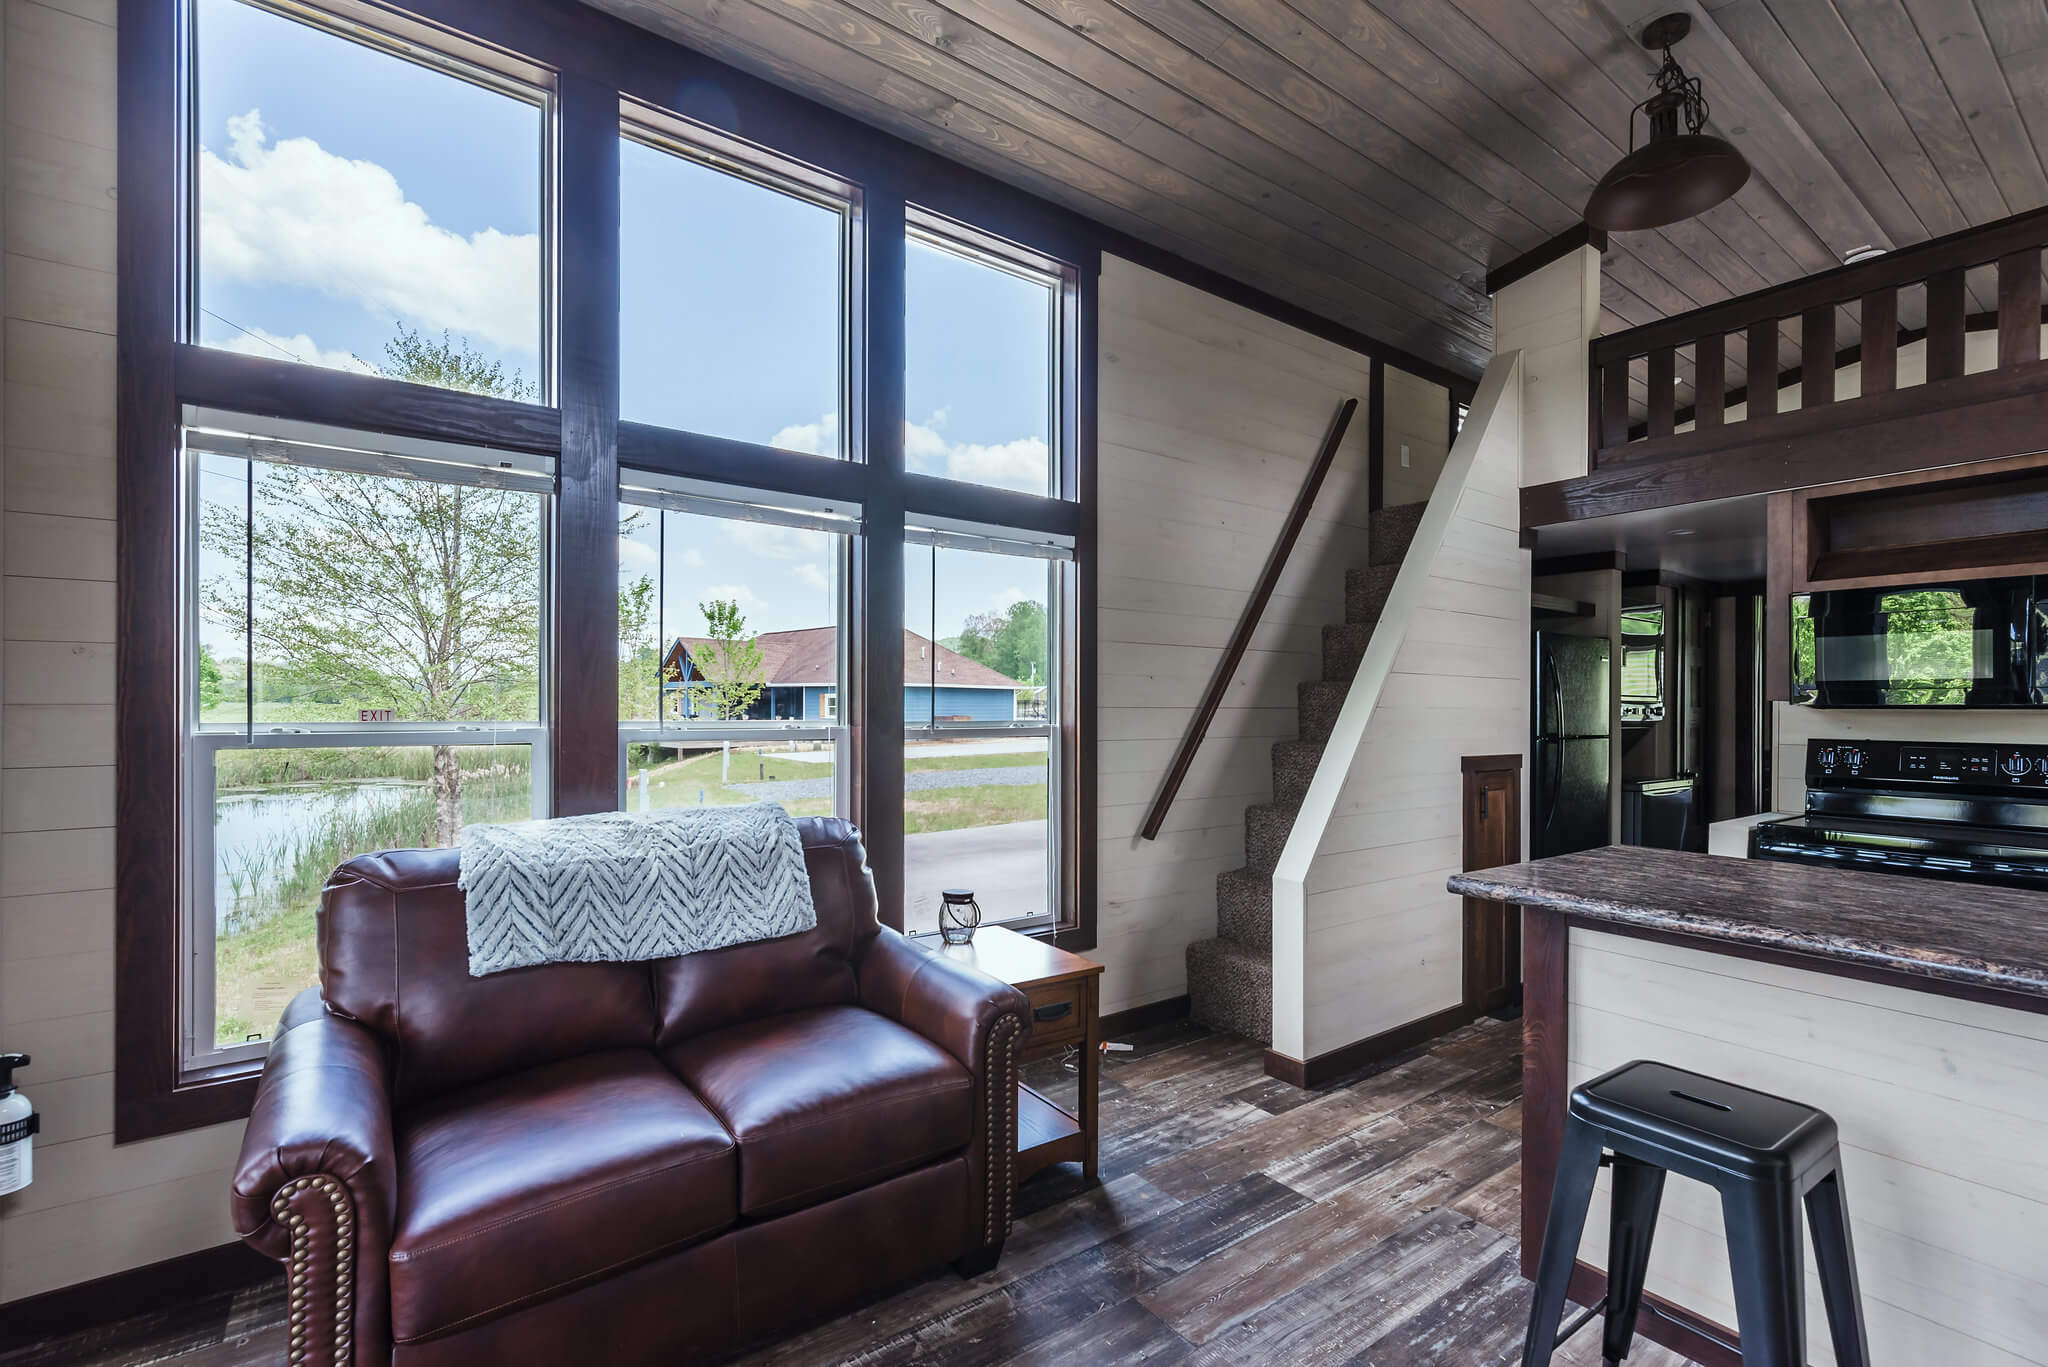 Interior of tiny home at Waterside at Blue Ridge